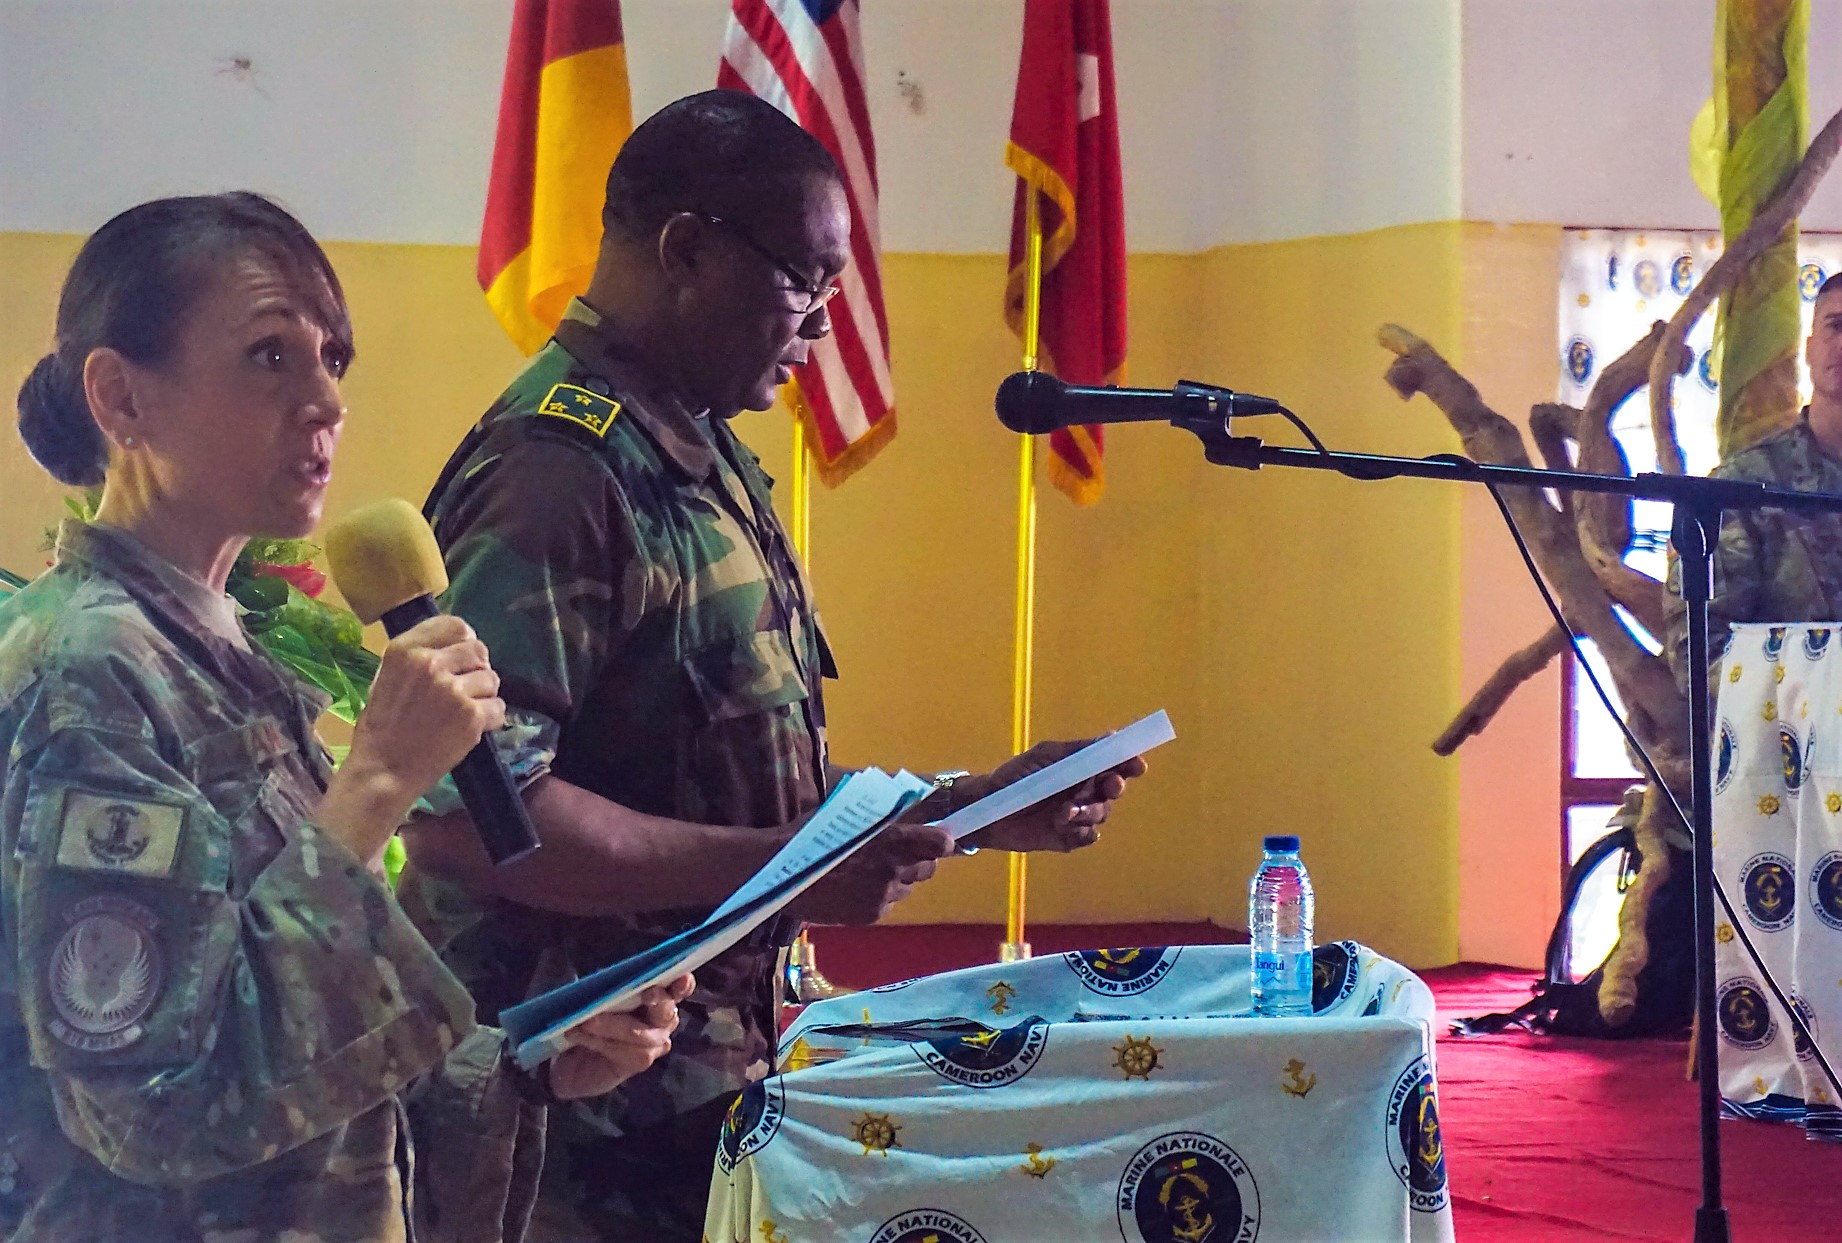 U.S. Air Force Master Sgt. Sarah Balian translates as Cameroonian Maj. Gen. Saly Mohamadou, Commander of the 2nd Military Region of Cameroon, provides his remarks during the opening ceremony for exercise Unified Focus 2017, held on the Douala Naval Base, April 24, 2017. UF 17 is a weeklong tabletop exercise that brings the military partners of the Lake Chad Basin area's Multinational Joint Task Force (MNJTF) together to practice joint planning and coordination through a series of scripted vignettes. (Photo courtesy of U.S. Army Africa Public Affairs/Released)